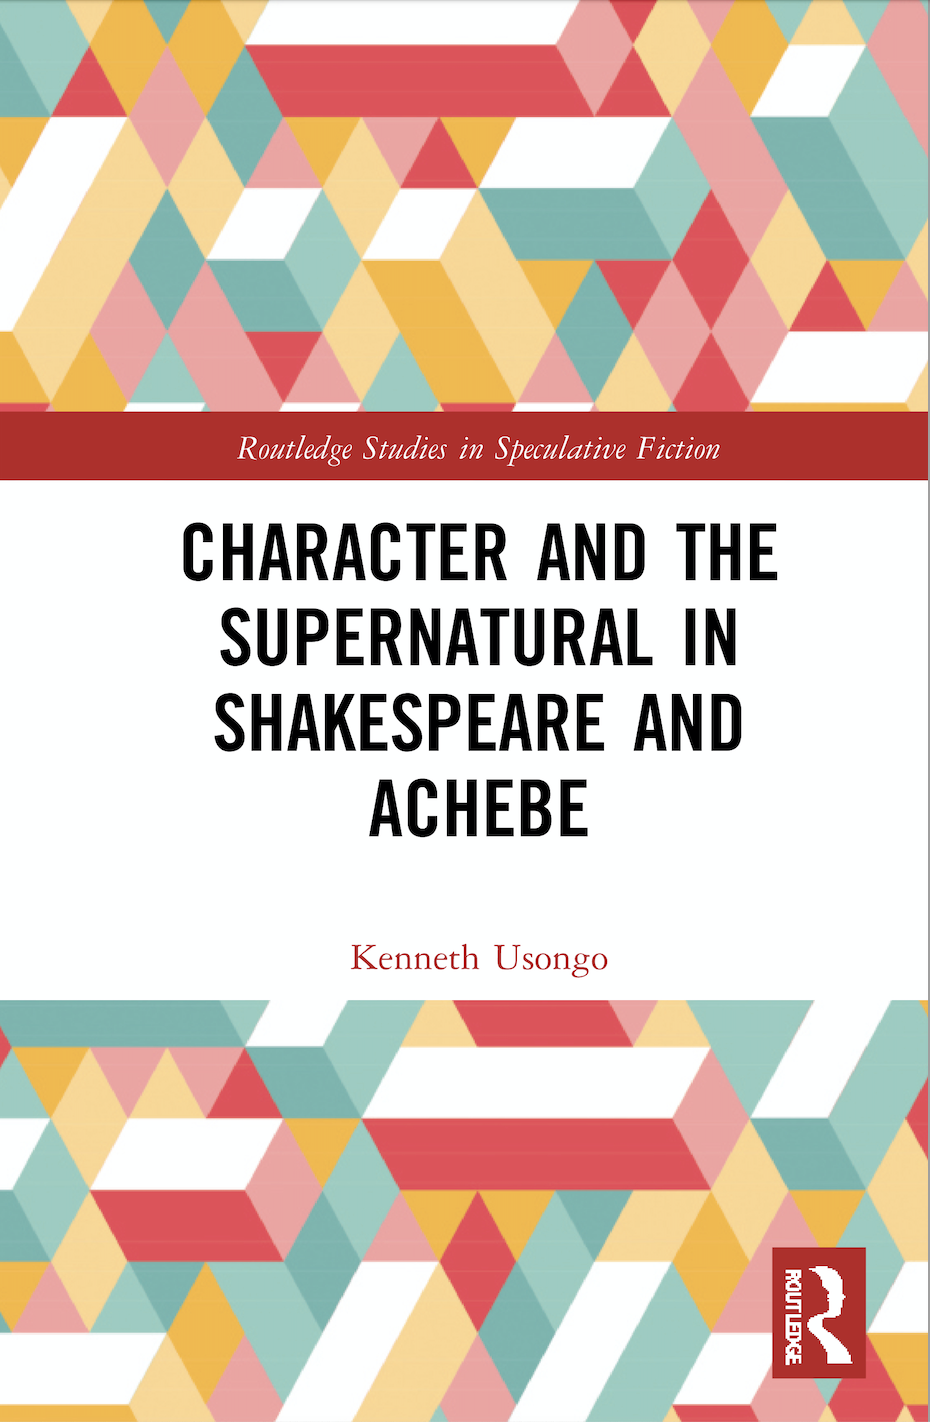 K. Usongo. Character and the Supernatural in Shakespeare and Achebe